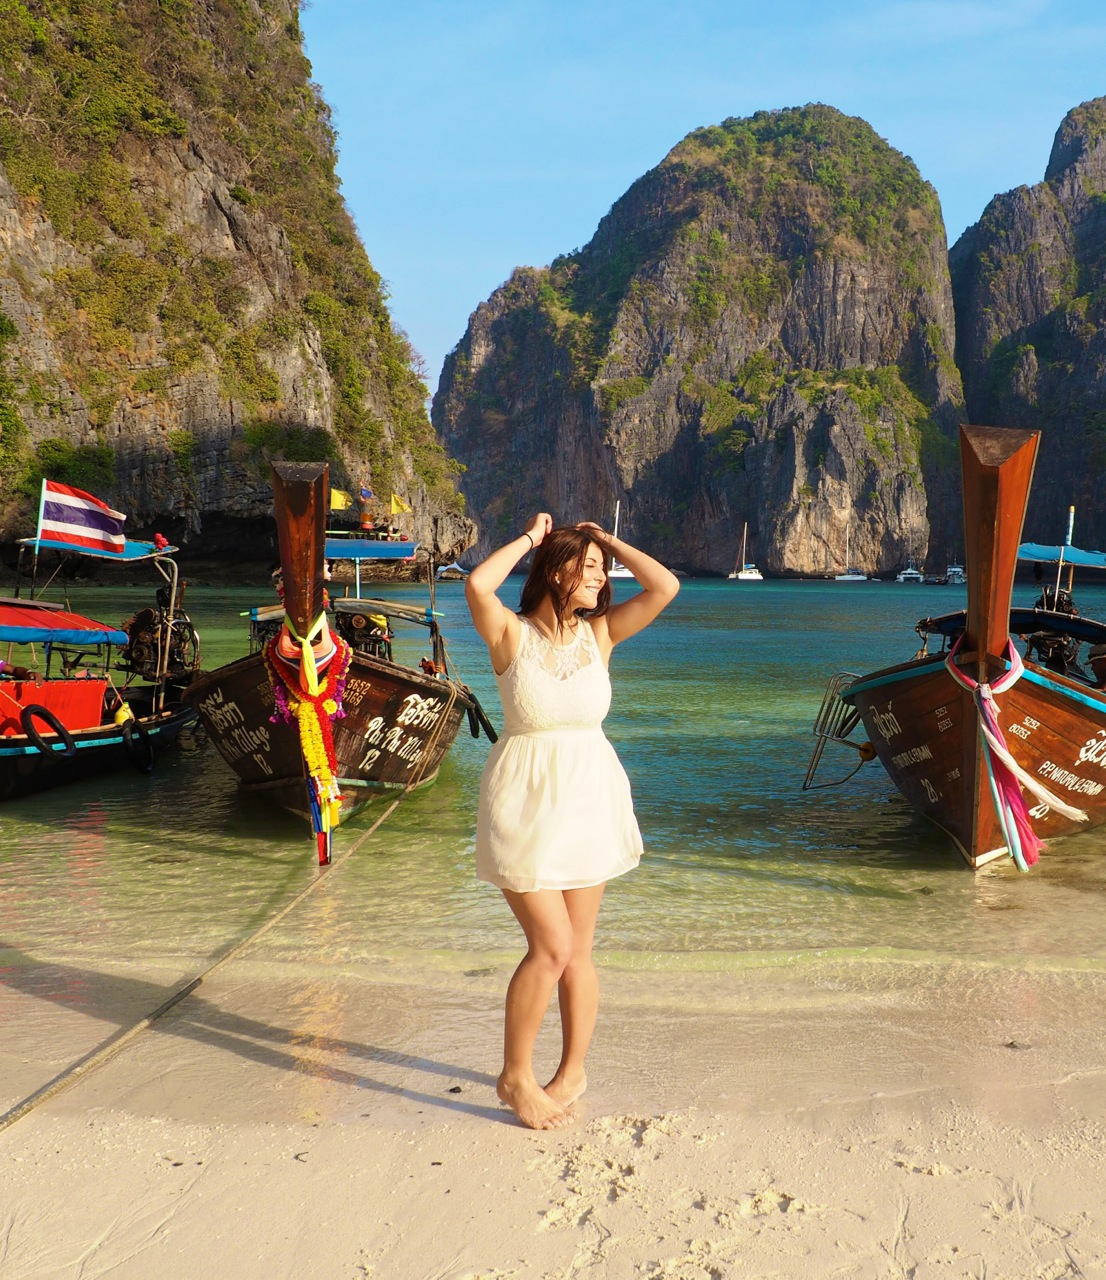 Phi Phi Relax Beach Resort: How To Experience Maya Bay Without The Crowds